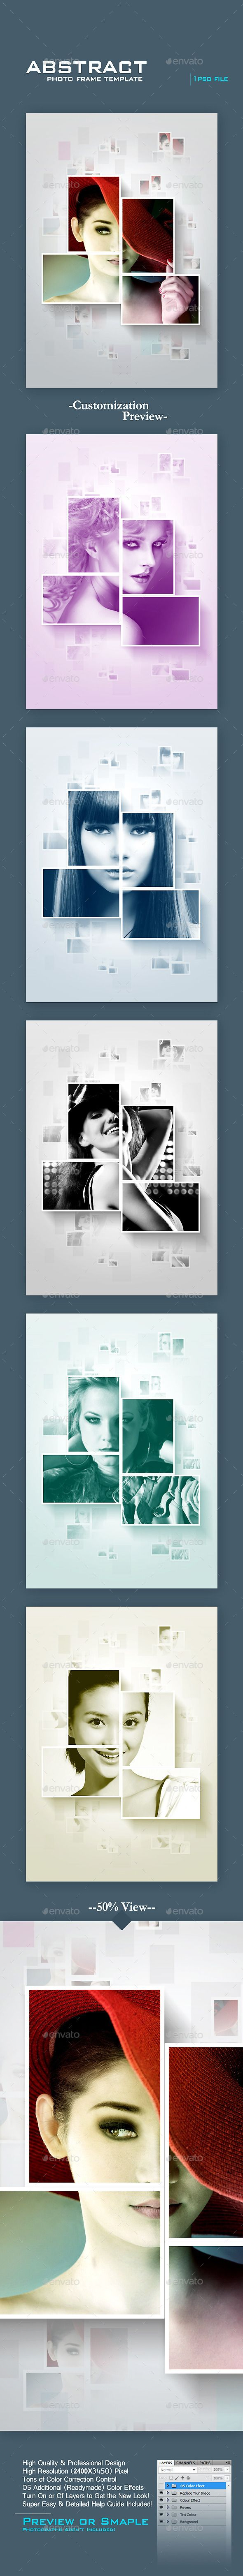 Abstract Photo Frame Template #design Download: http://graphicriver.net/item/abstract-photo-frame-template/11840731?ref=ksioks